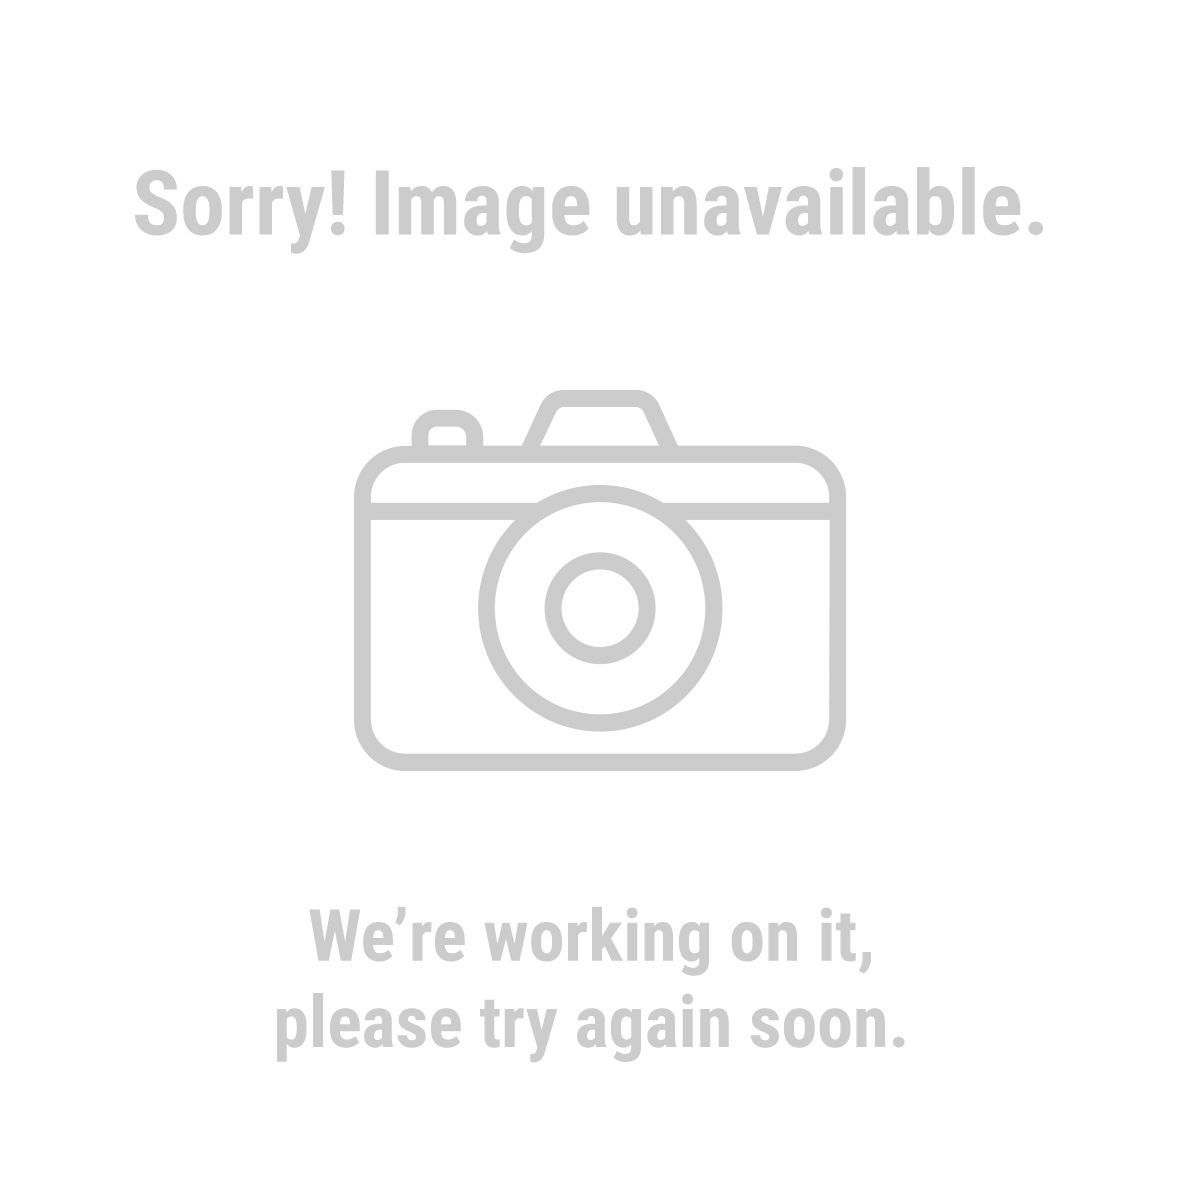 U.S. General 40749 Pulley Remover and Installer Set